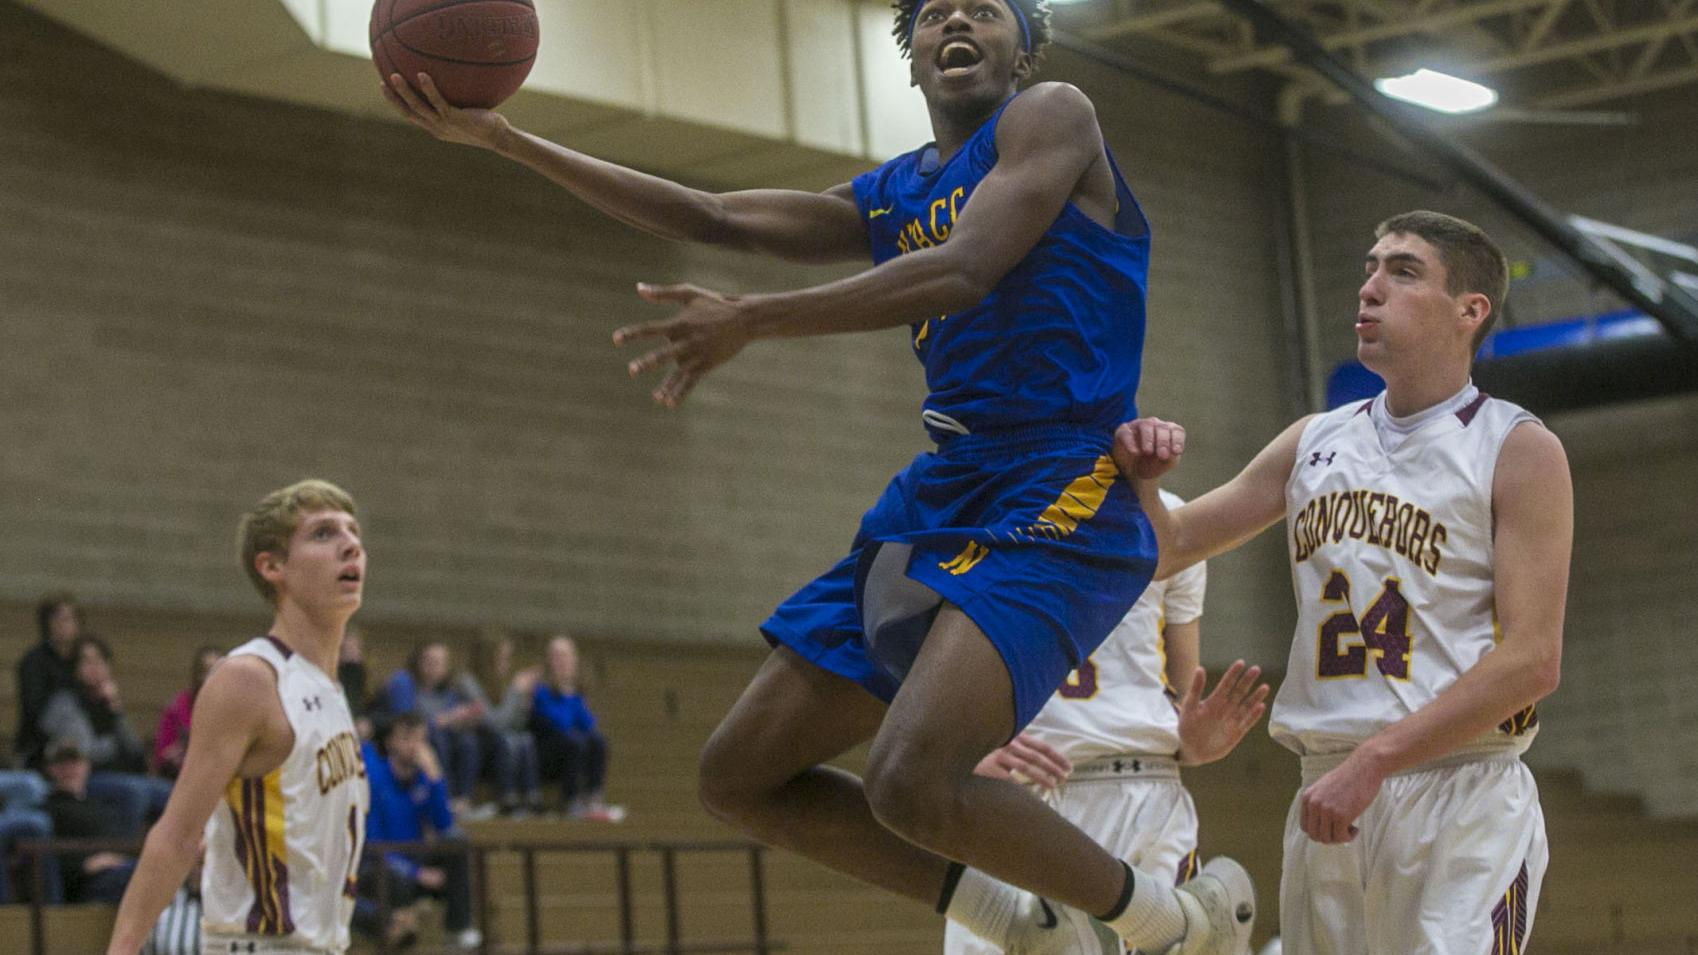 niacc runs over aflbs in final game before break north